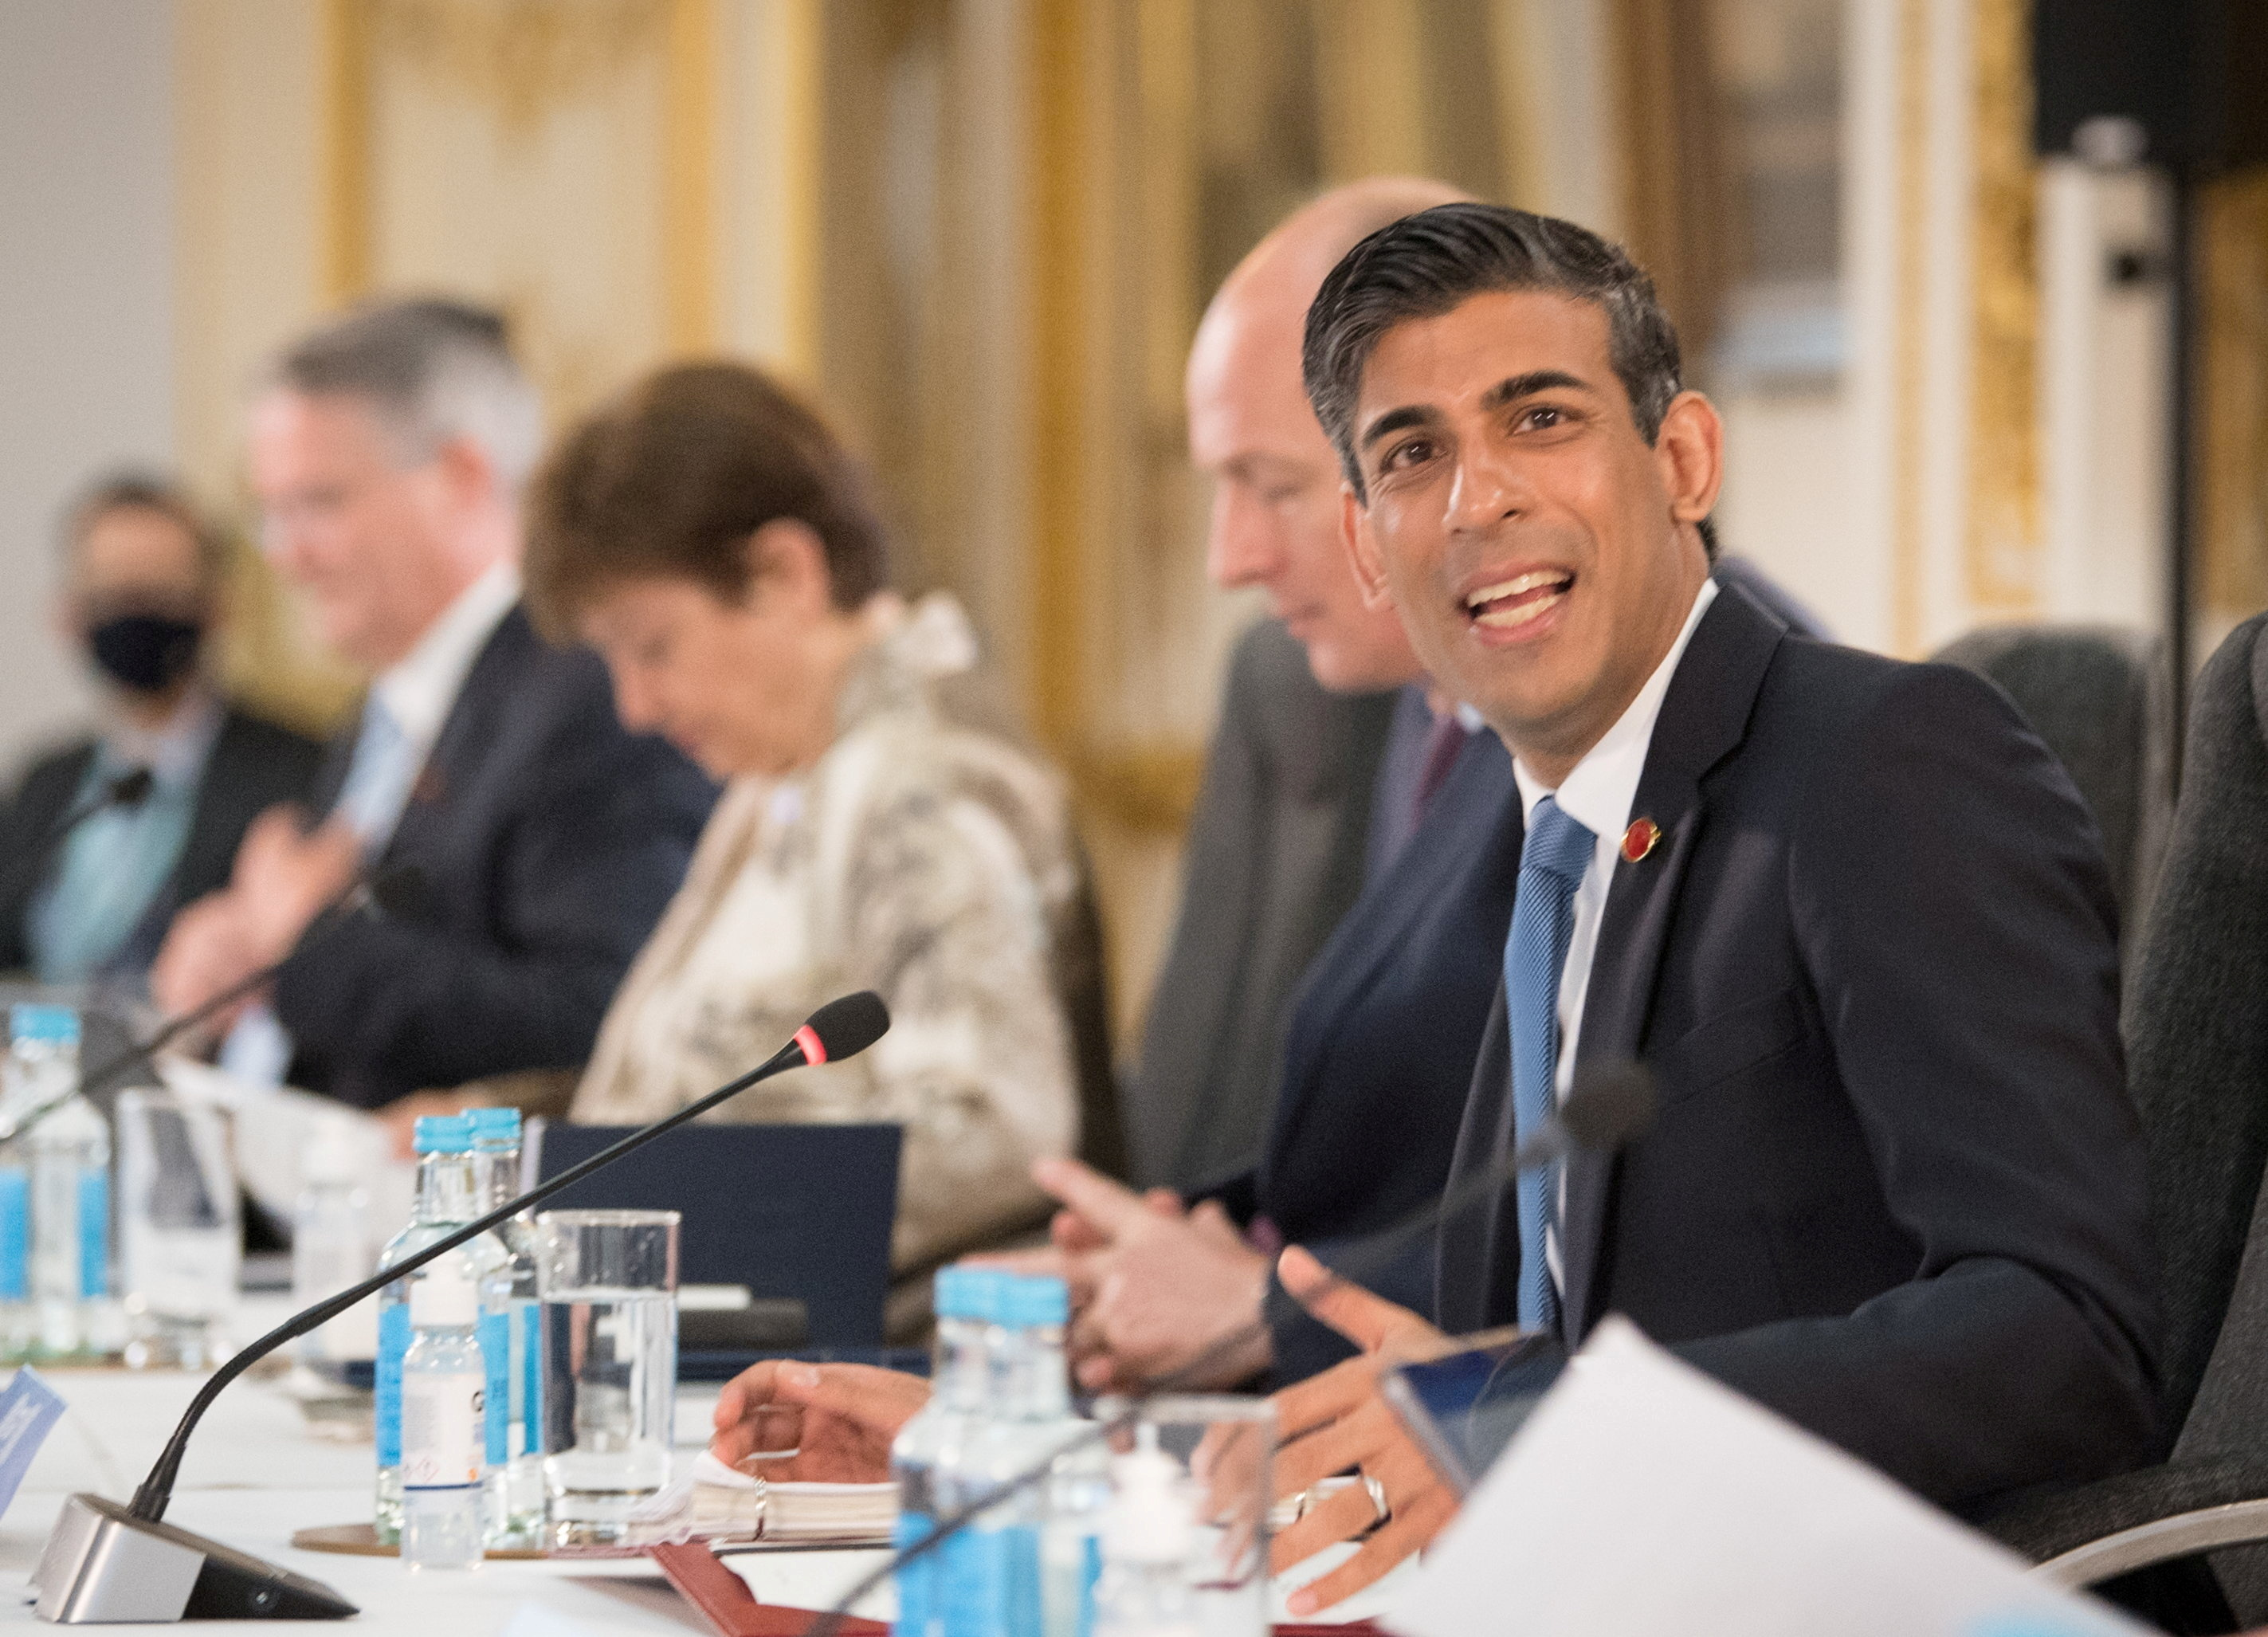 Britain's Chancellor of the Exchequer Rishi Sunak speaks at a meeting of finance ministers from across the G7 nations in London, Britain June 4, 2021. Stefan Rousseau/PA Wire/Pool via REUTERS/File Photo